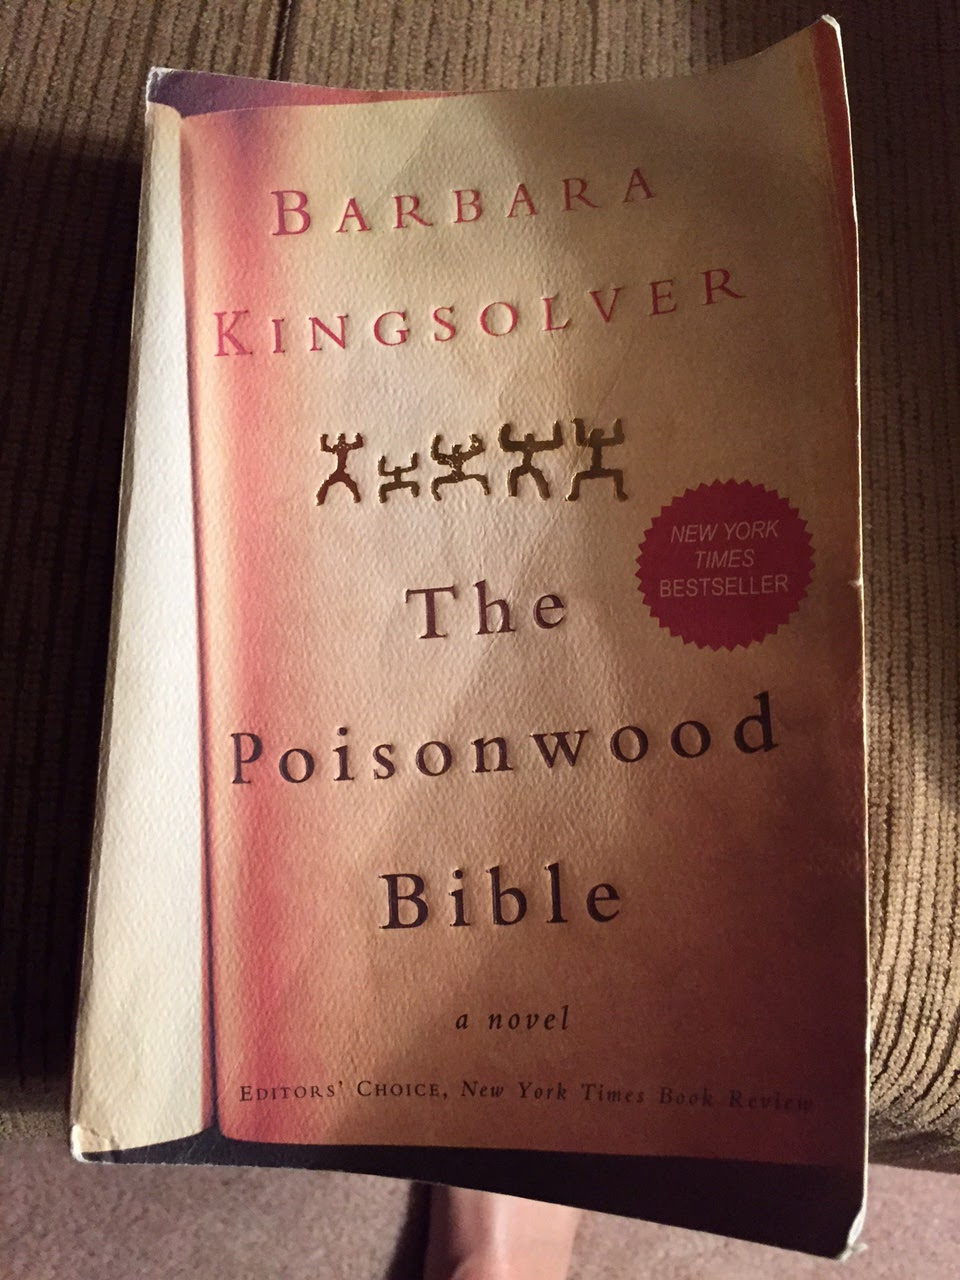 biblical allusions in the poisonwood bible